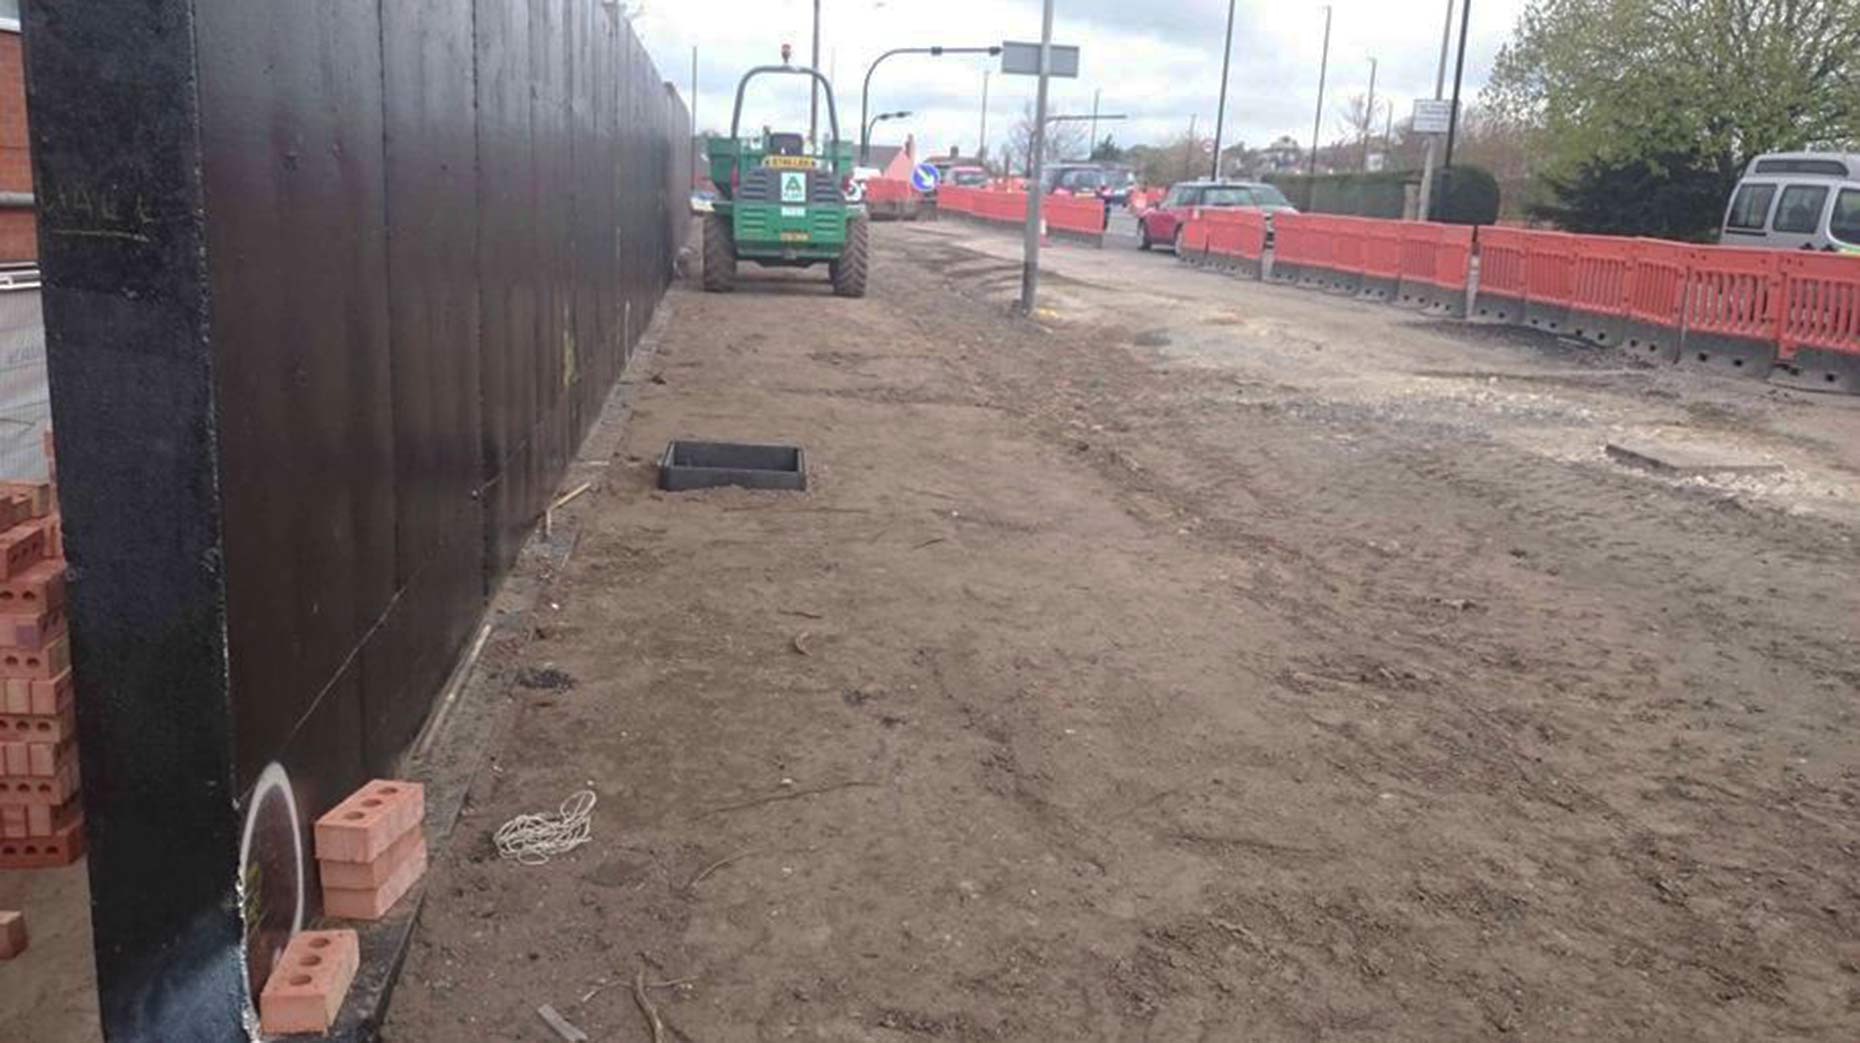 Work is ongoing to bring an additional lane to the Canwick Road area. Photo: LCC